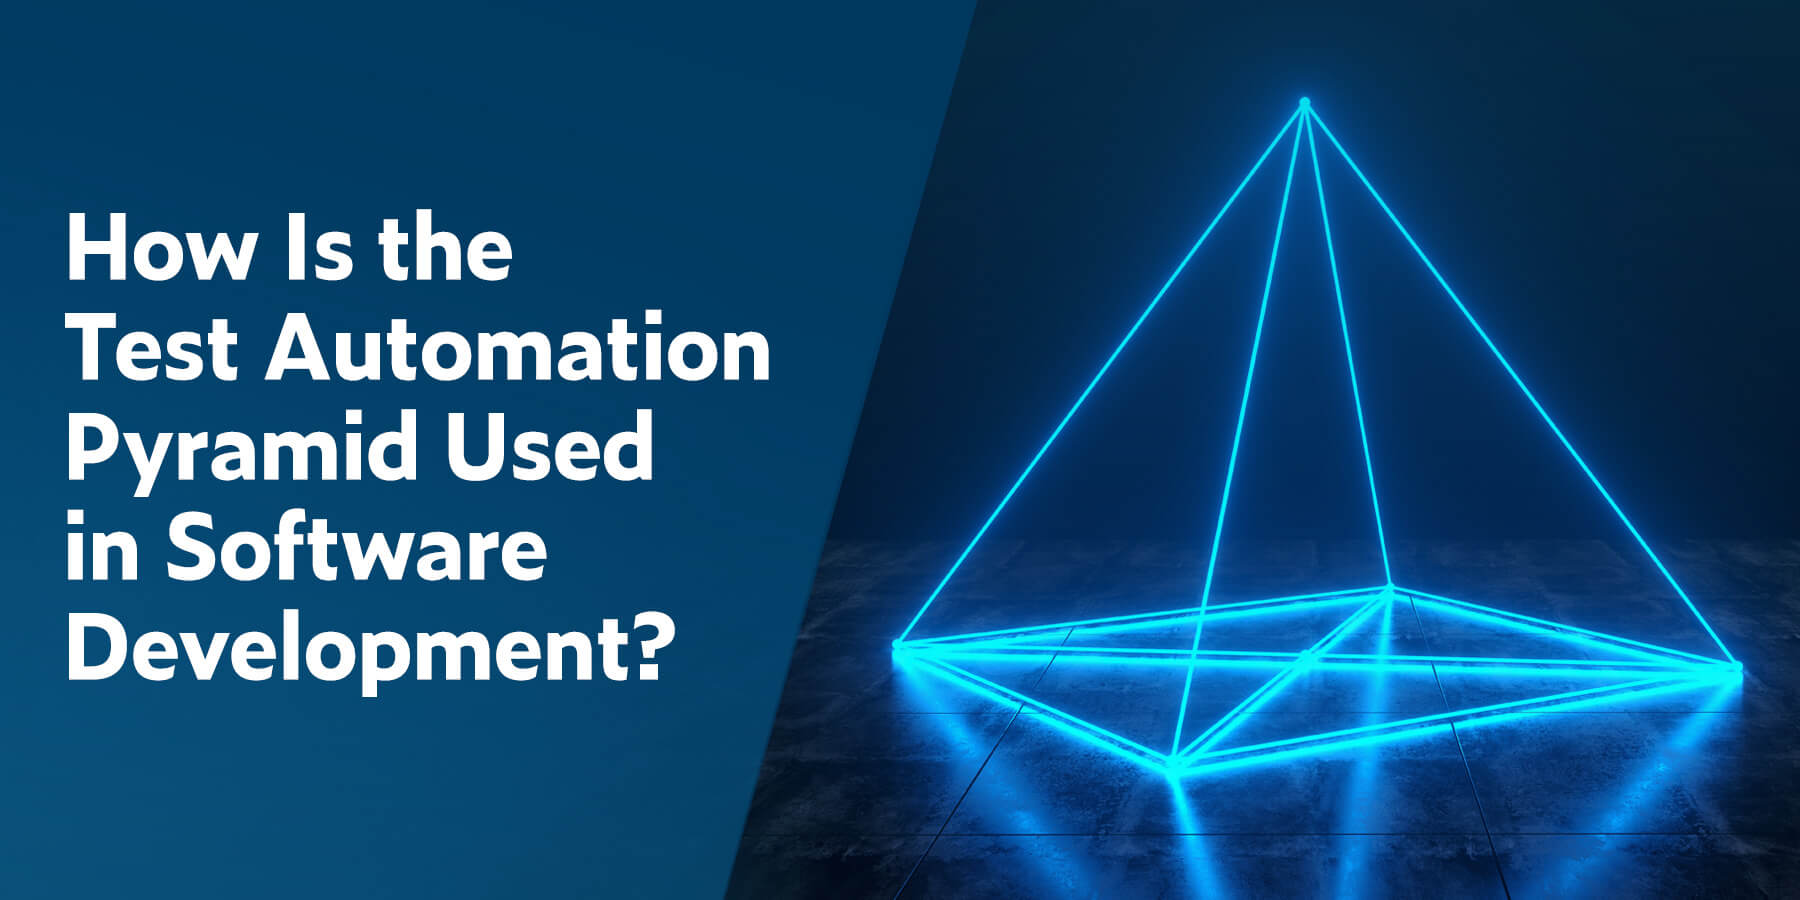 How Is the Test Automation Pyramid Used in Software Development?